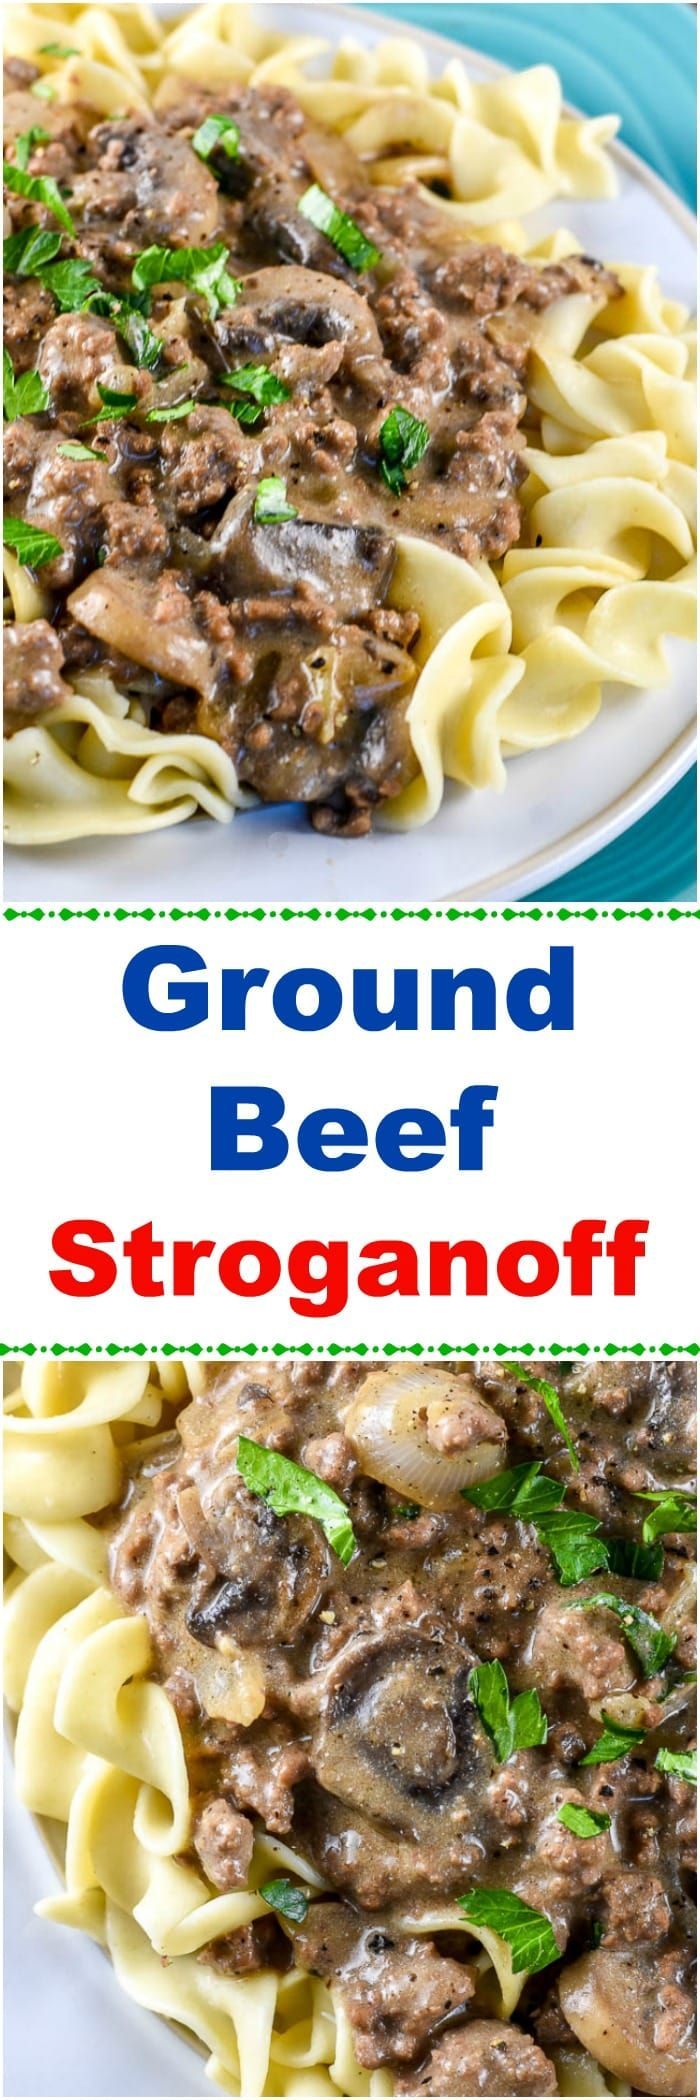 This from-scratch Ground Beef Stroganoff recipe is a variation of the classic Beef Stroganoff that uses ground beef instead of steak and omits the cream of mushroom soup, and instead, adds sherry, beef broth, dijon mustard, and sour cream for the sauce or gravy.    This Beef Stroganoff recipe, made with ground beef, makes an easy, budget-friendly, comfort food dinner can feed a crowd without breaking the bank.  #BeefStroganoff #GroundBeefStroganoff via @flavormosaic